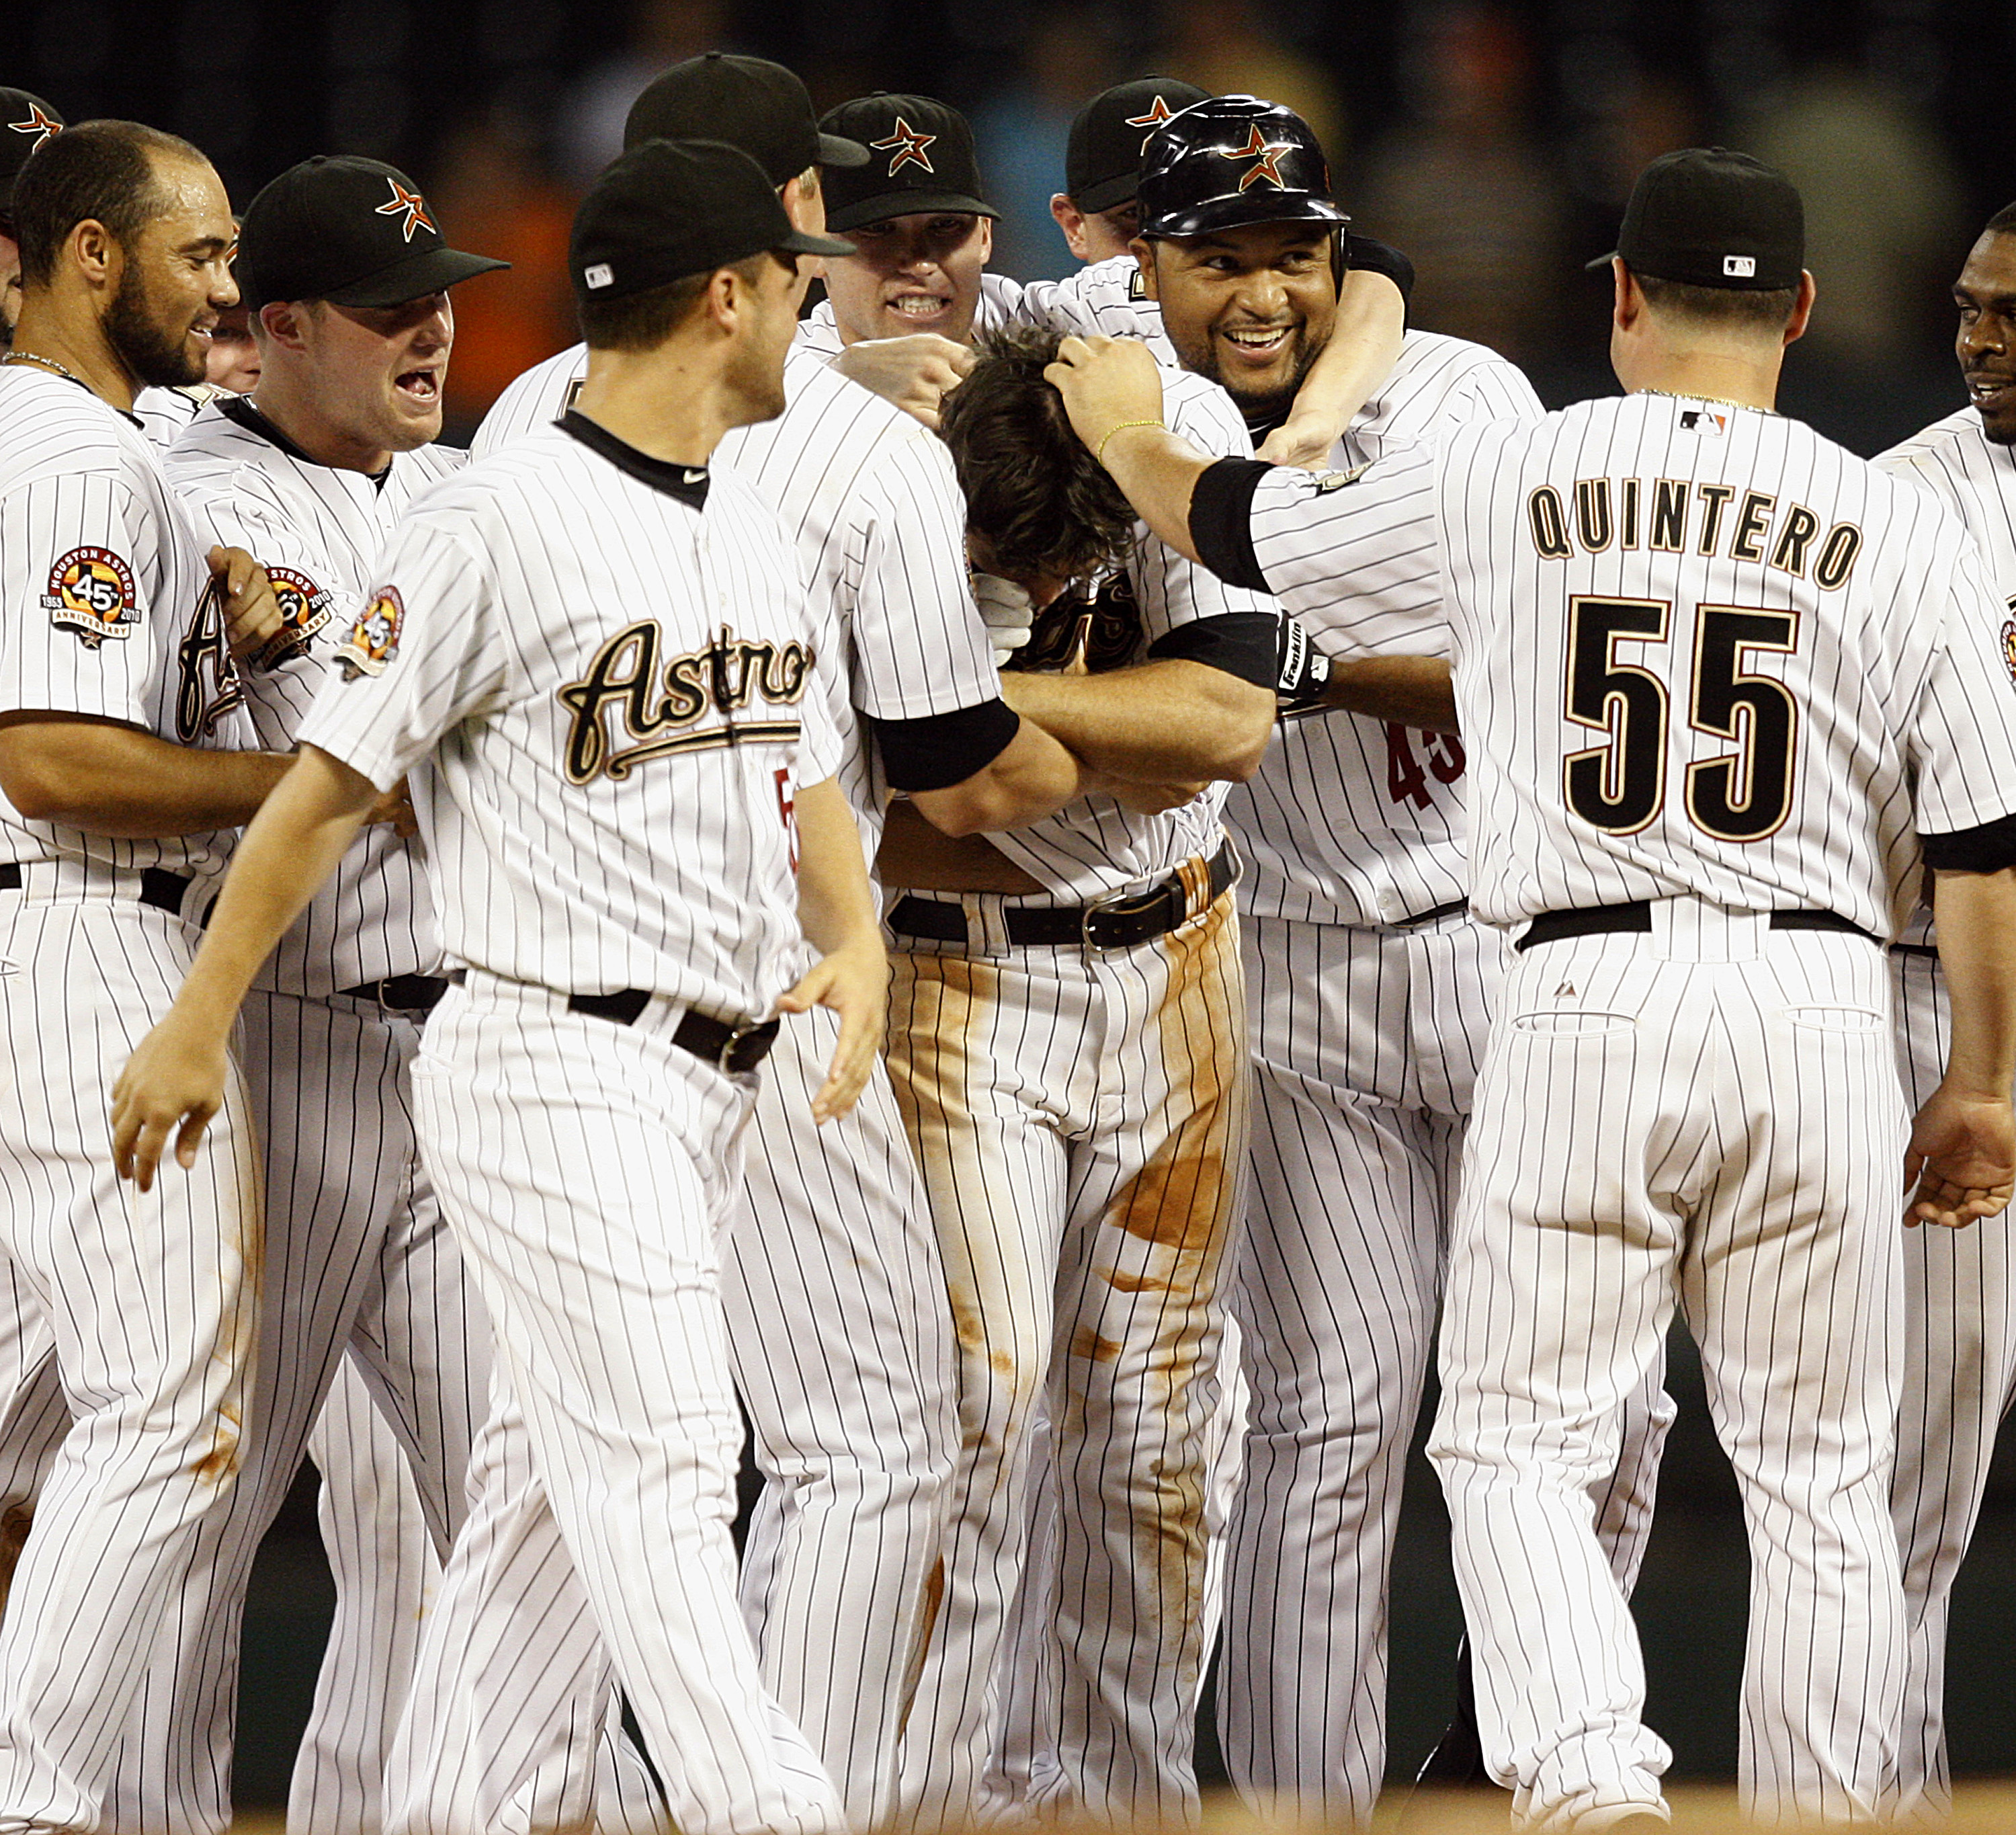 The Houston Astros seem burried in the NL Central.  Do they have what it takes to move up the ranks in 2011?